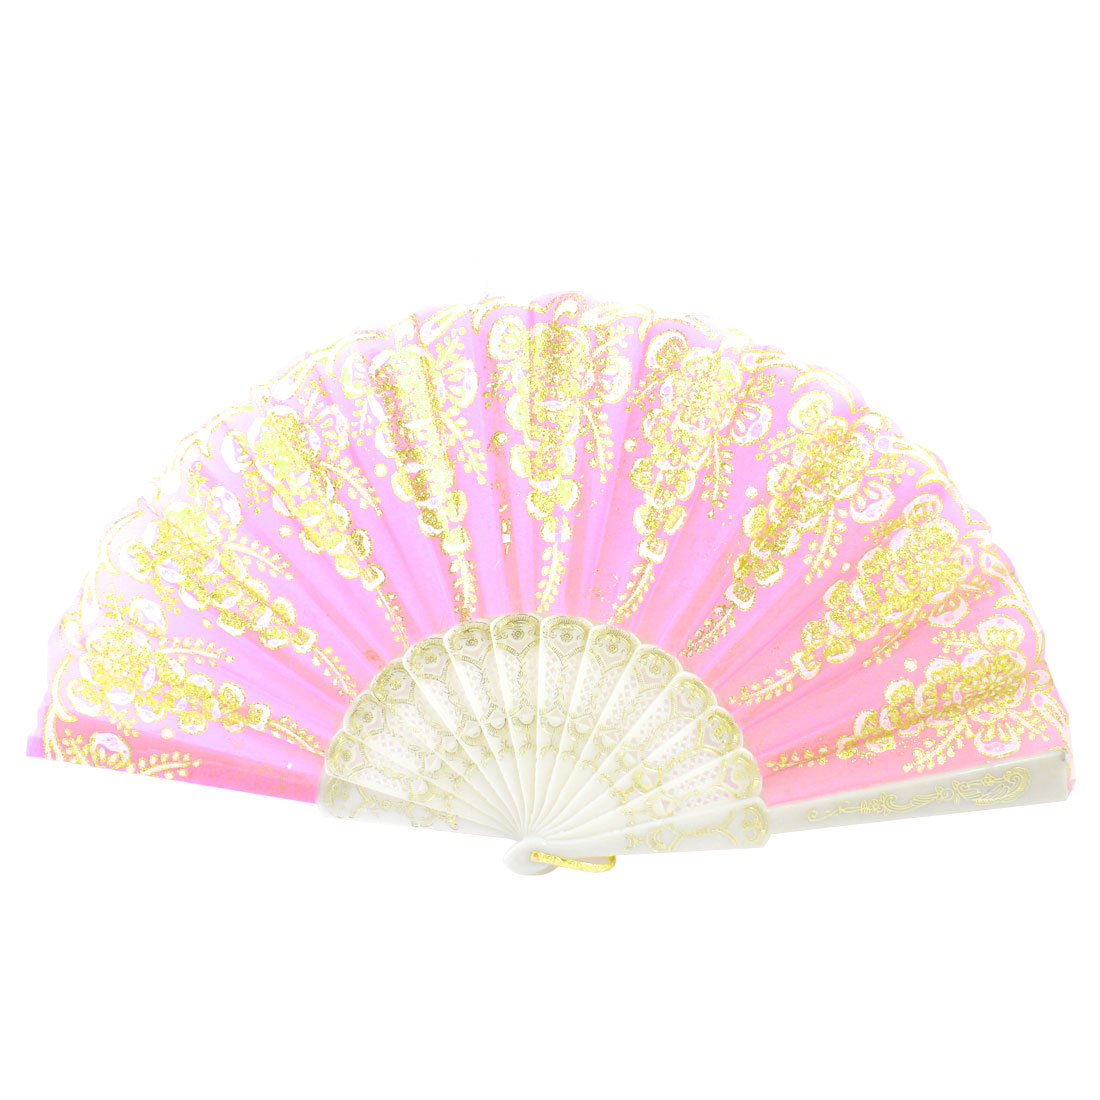 Plastic Frame Gold Tone Glittery Powder Decor Floral Pattern Foldable Hand Fan Pink White